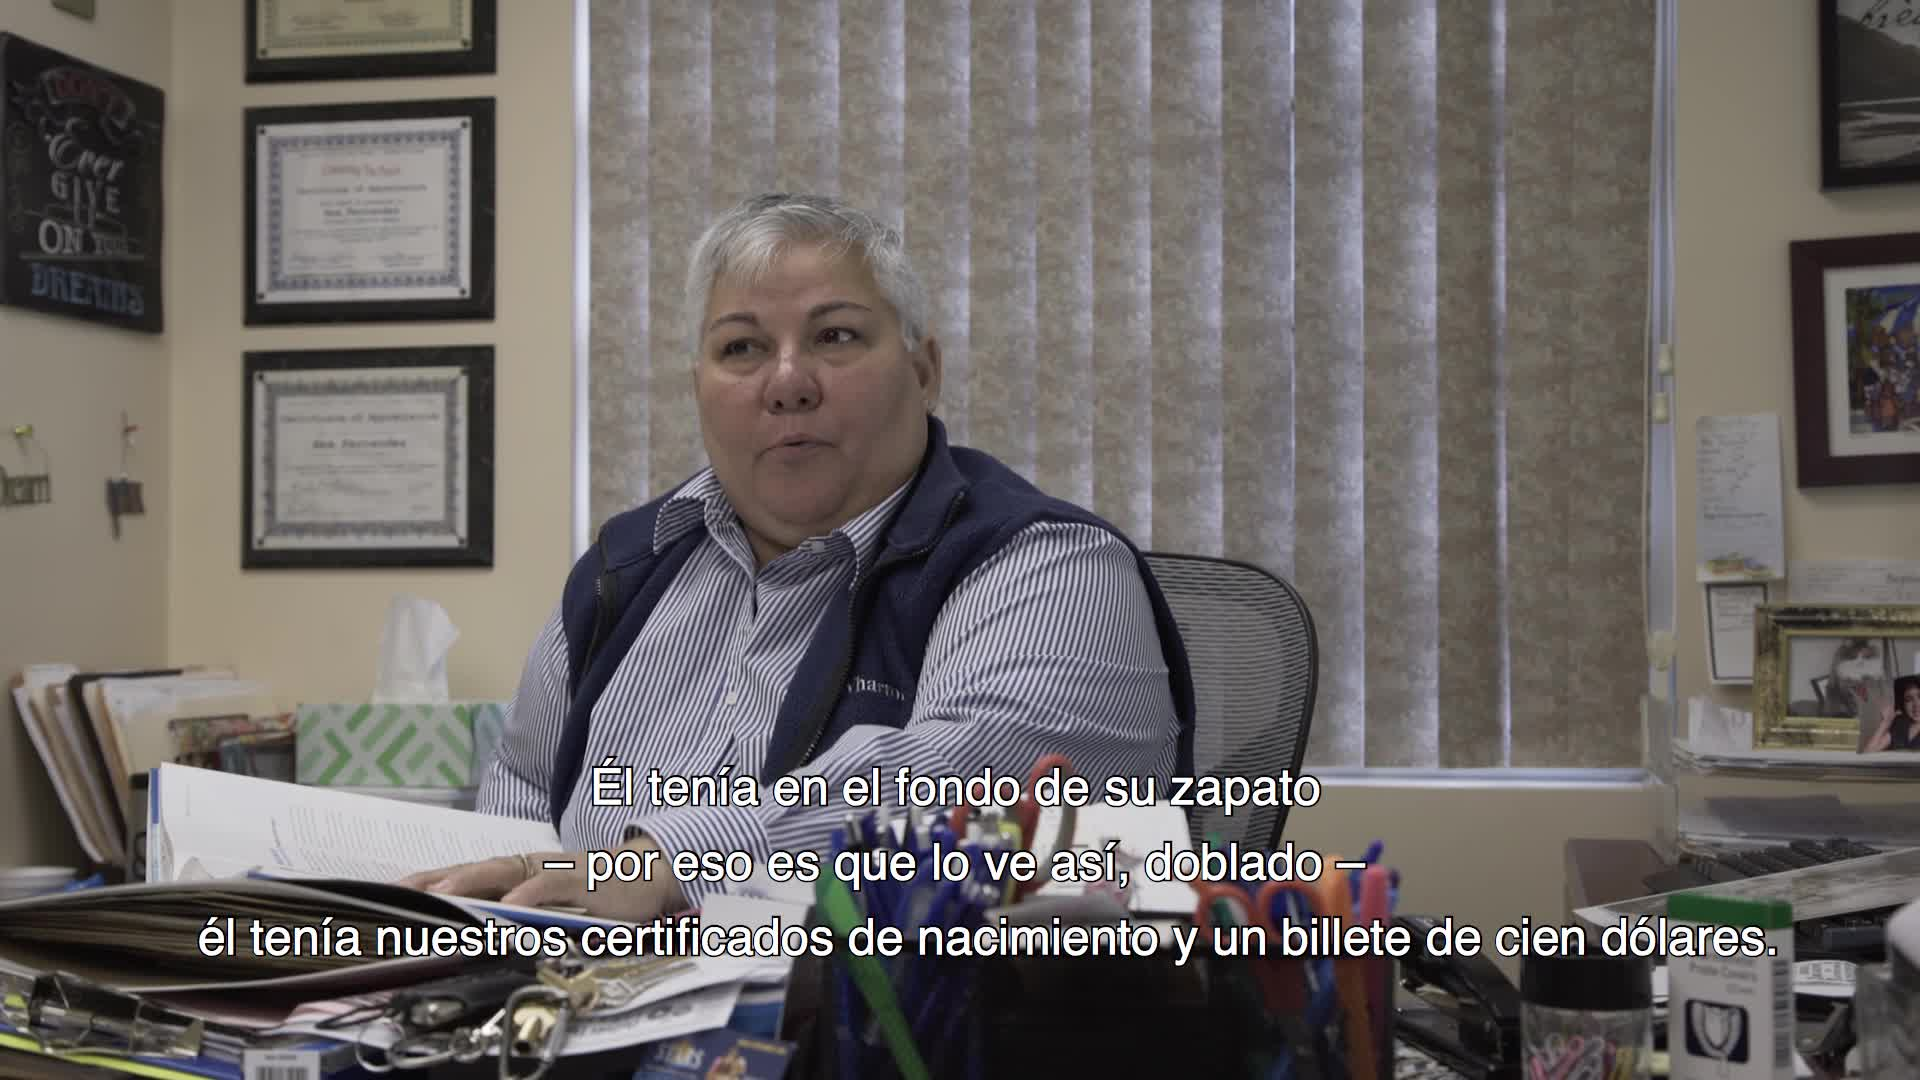 Excerpt from oral history interview of Ana Fernández